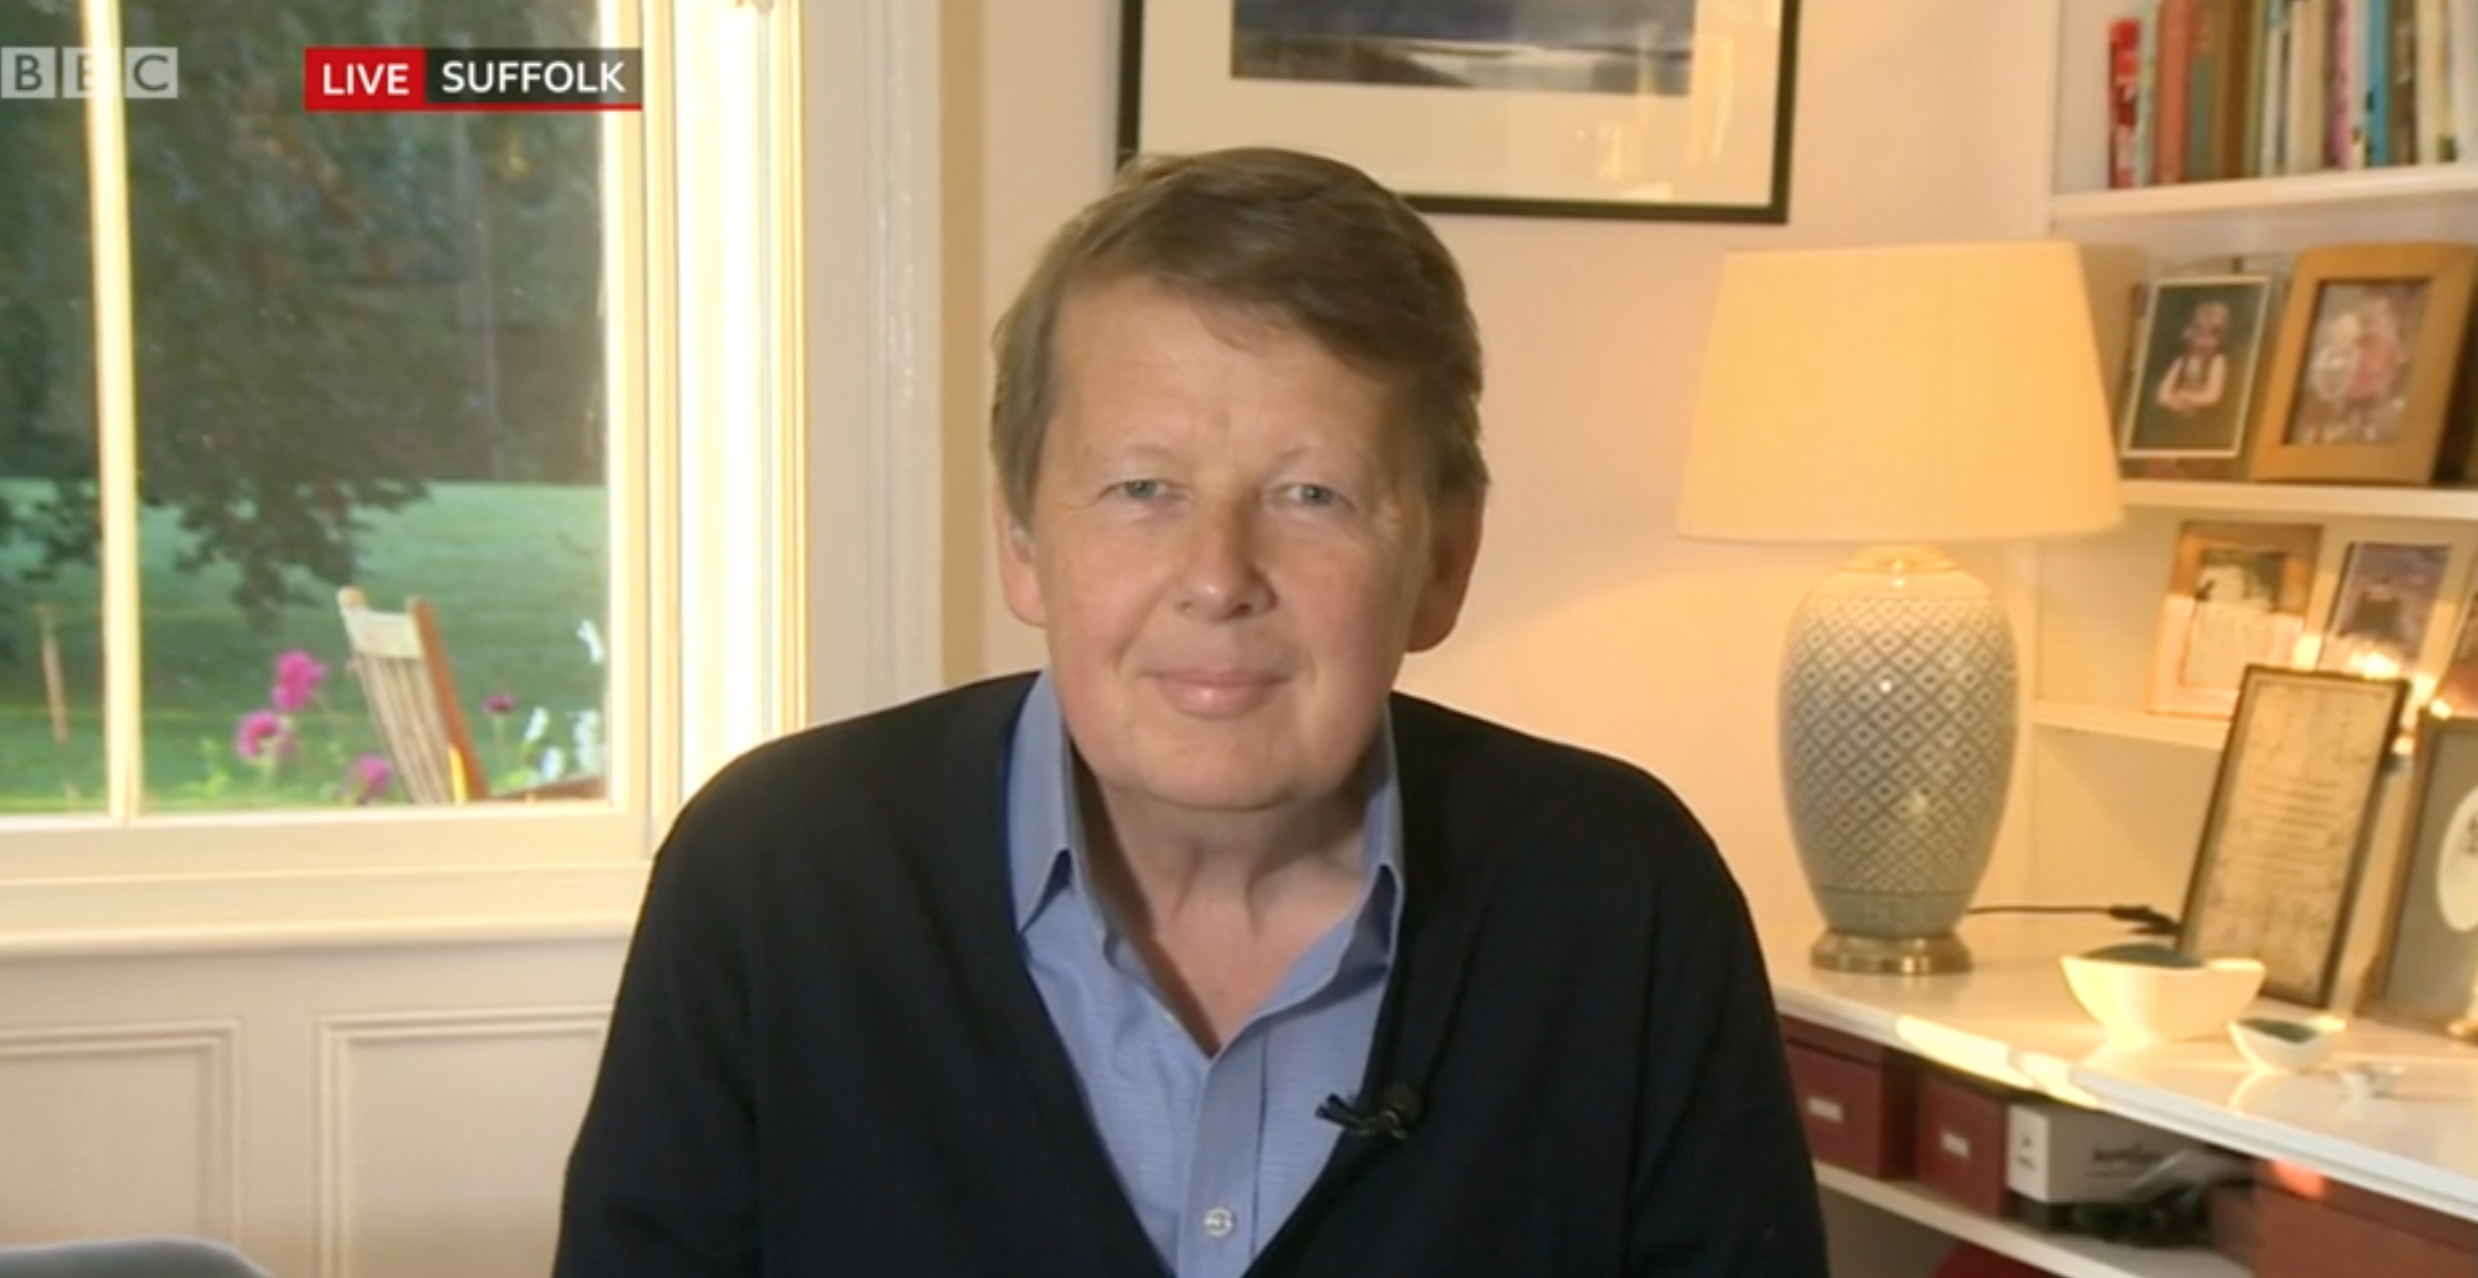 Bill Turnbull says love is carrying him through his prostate cancer battle